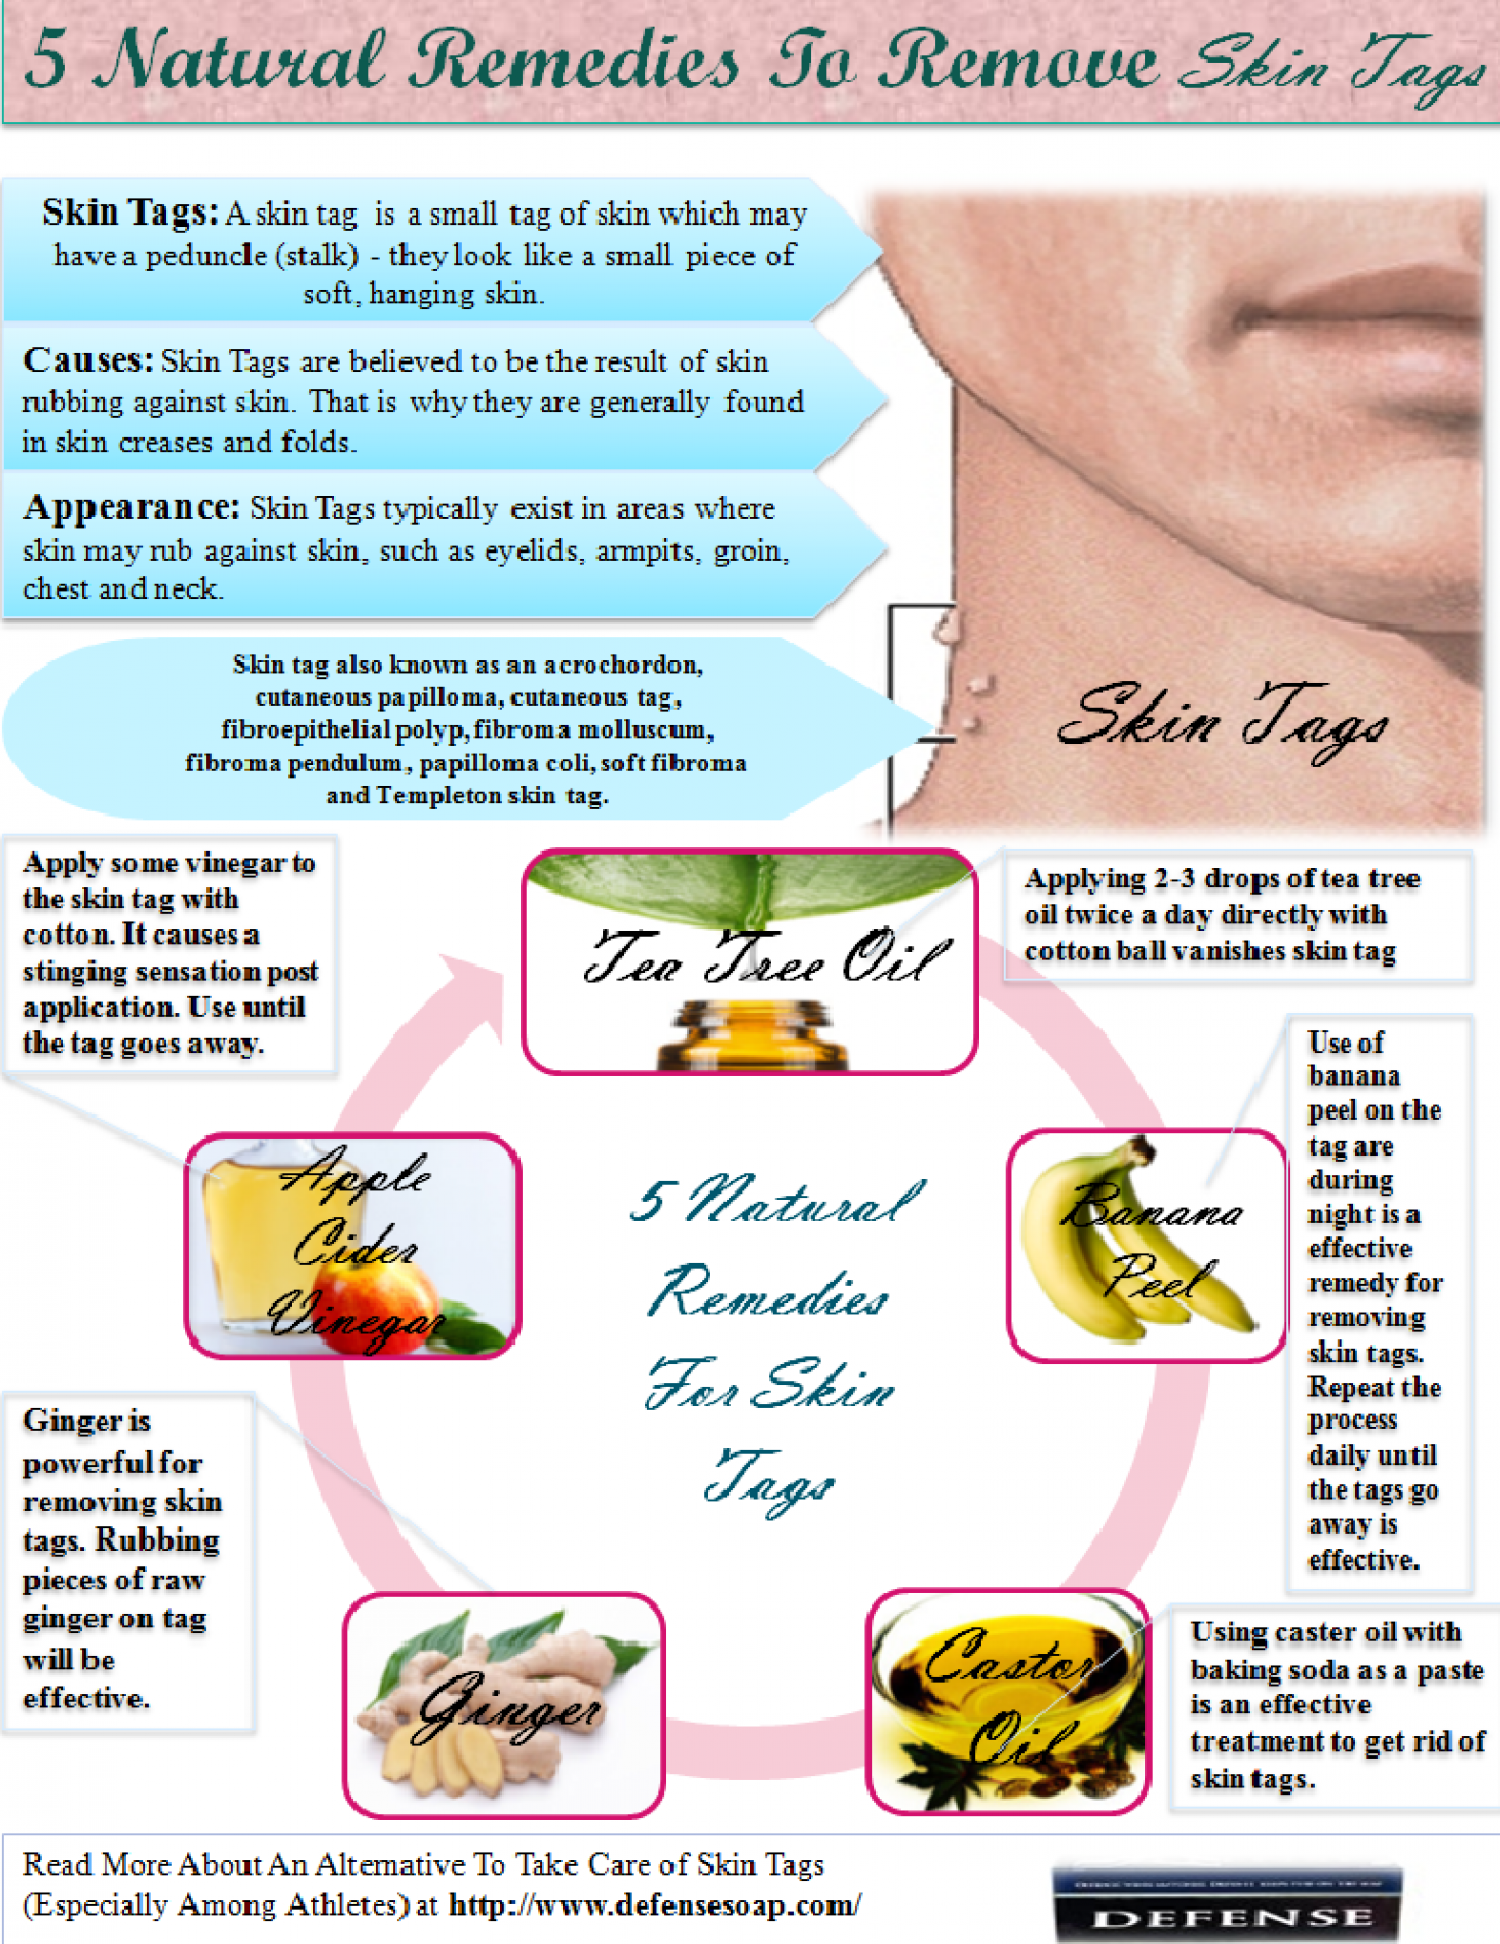 Five Natural Remedies For Skin Tags Infographic